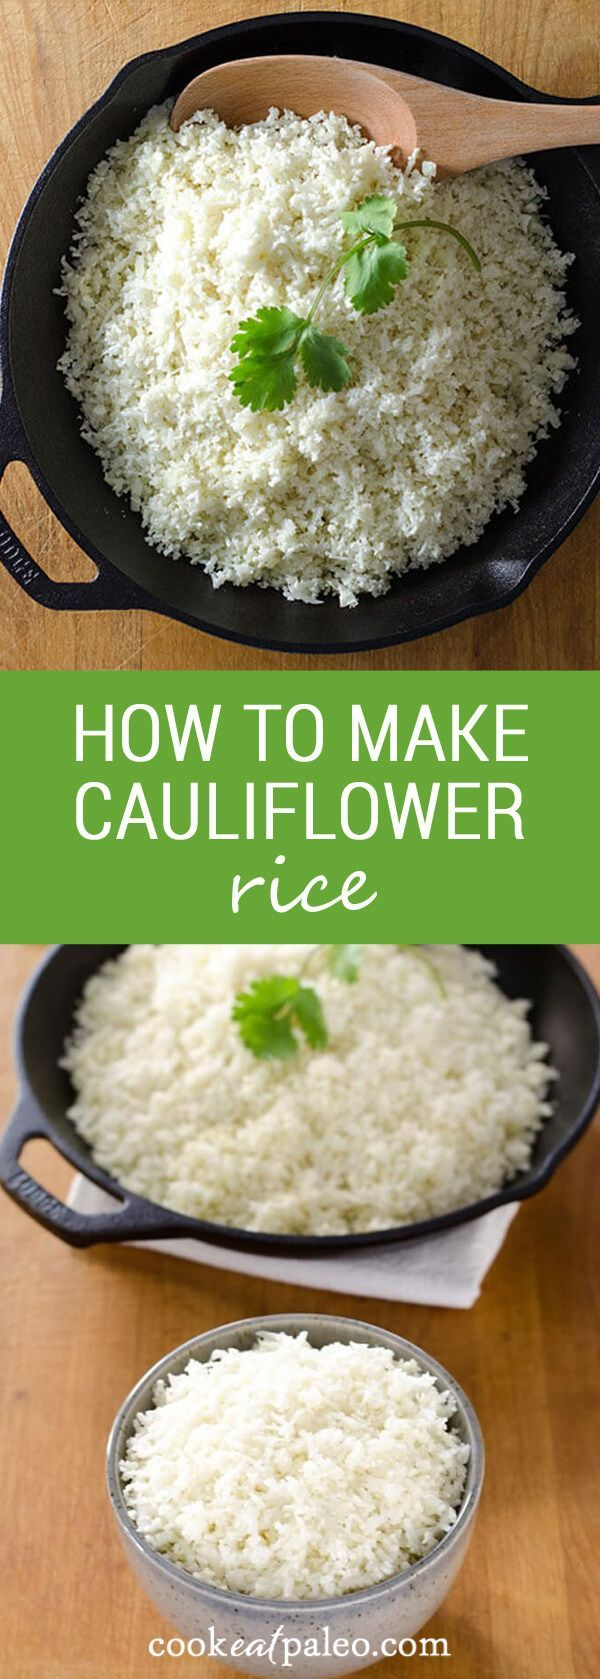 How to make cauliflower rice and stock your refrigerator or freezer with a ready-to-cook, 5-minute paleo side dish that will go with just about anything. via @cookeatpaleo